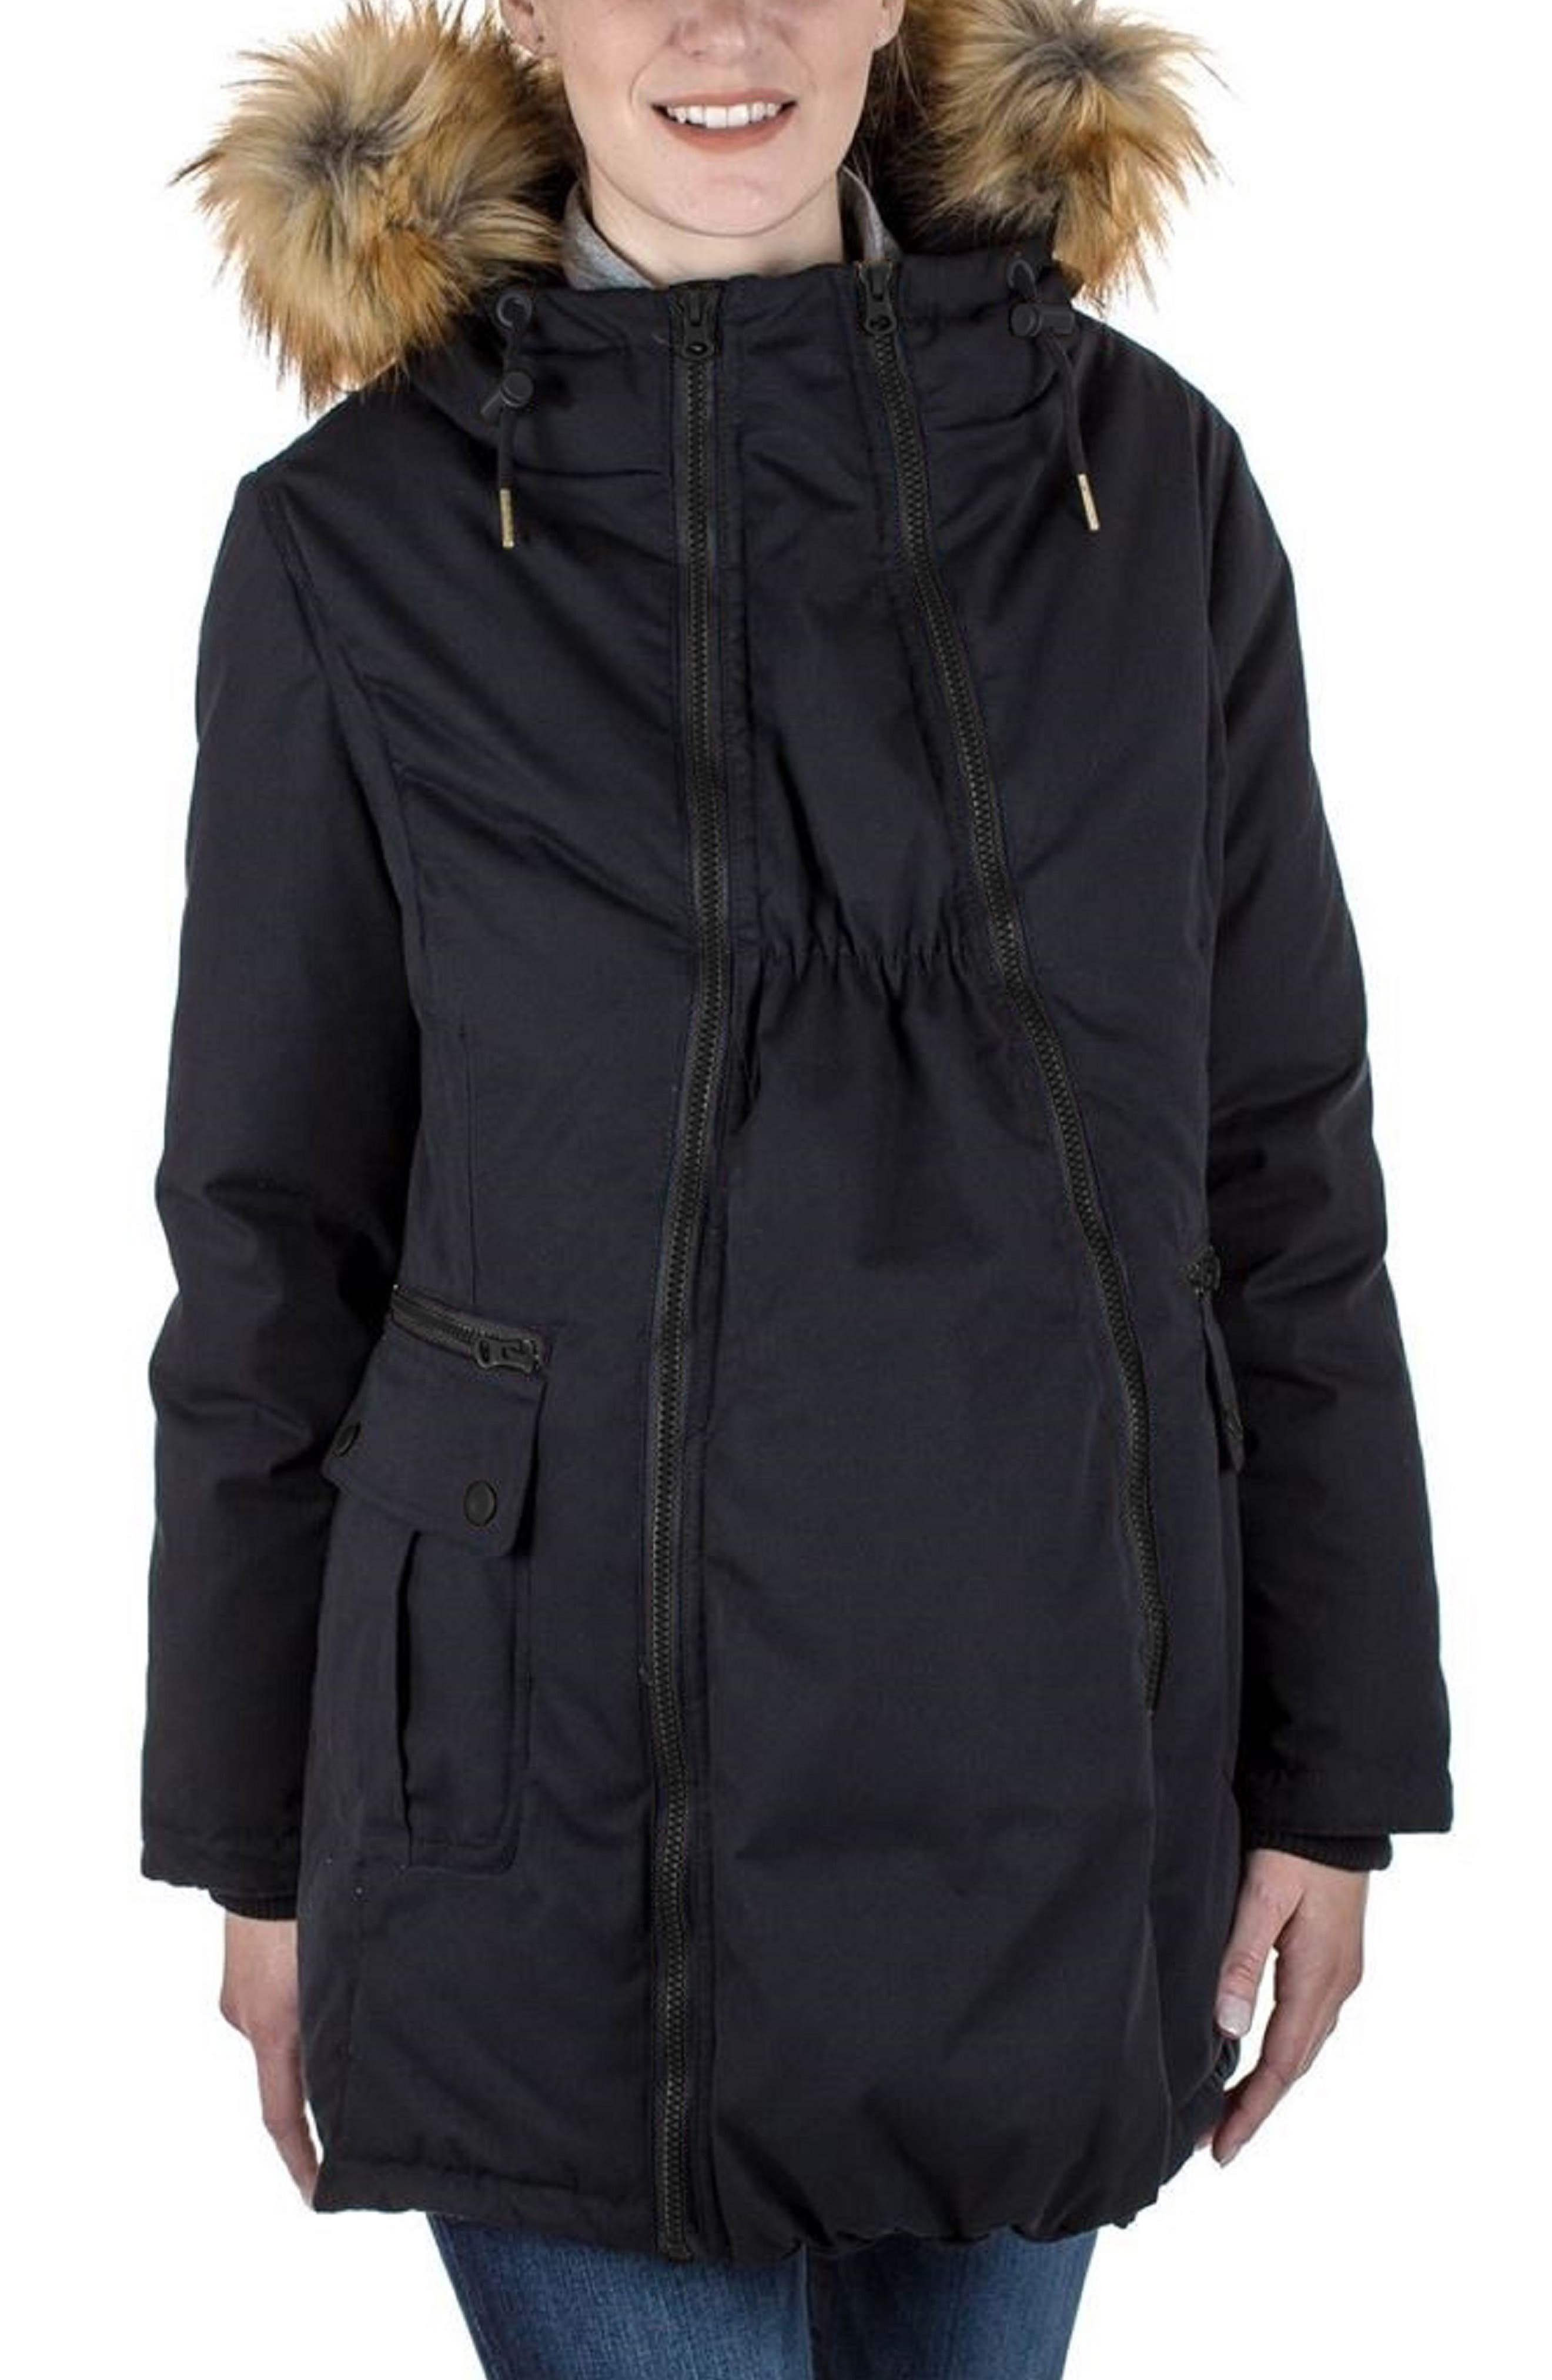 MODERN ETERNITY, Convertible Down 3-in-1 Maternity Jacket, Main thumbnail 1, color, BLACK